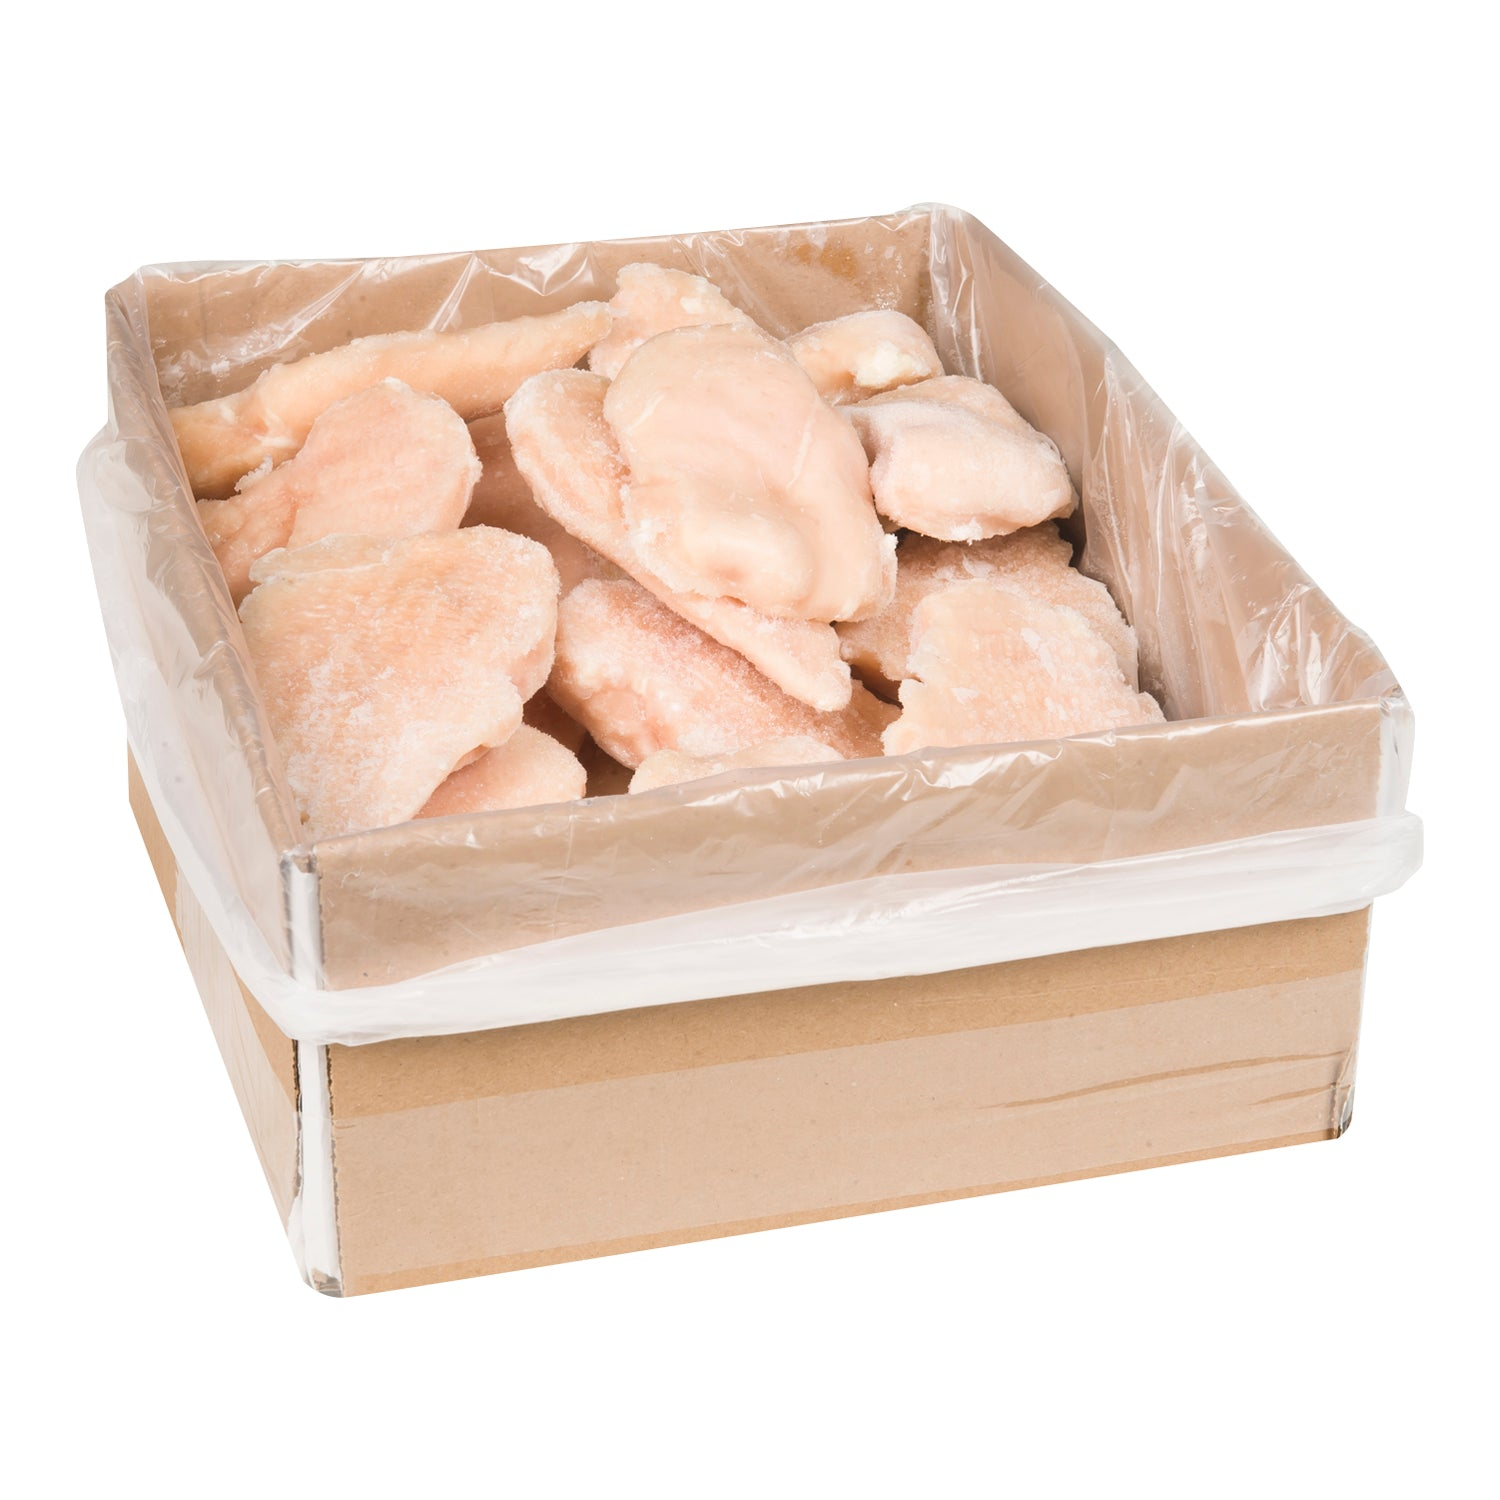 Sysco Reliance Individually Quick Frozen Boneless Skinless Chicken Breast 6 oz - 4 kg - 1 Pack [$12.25/kg]